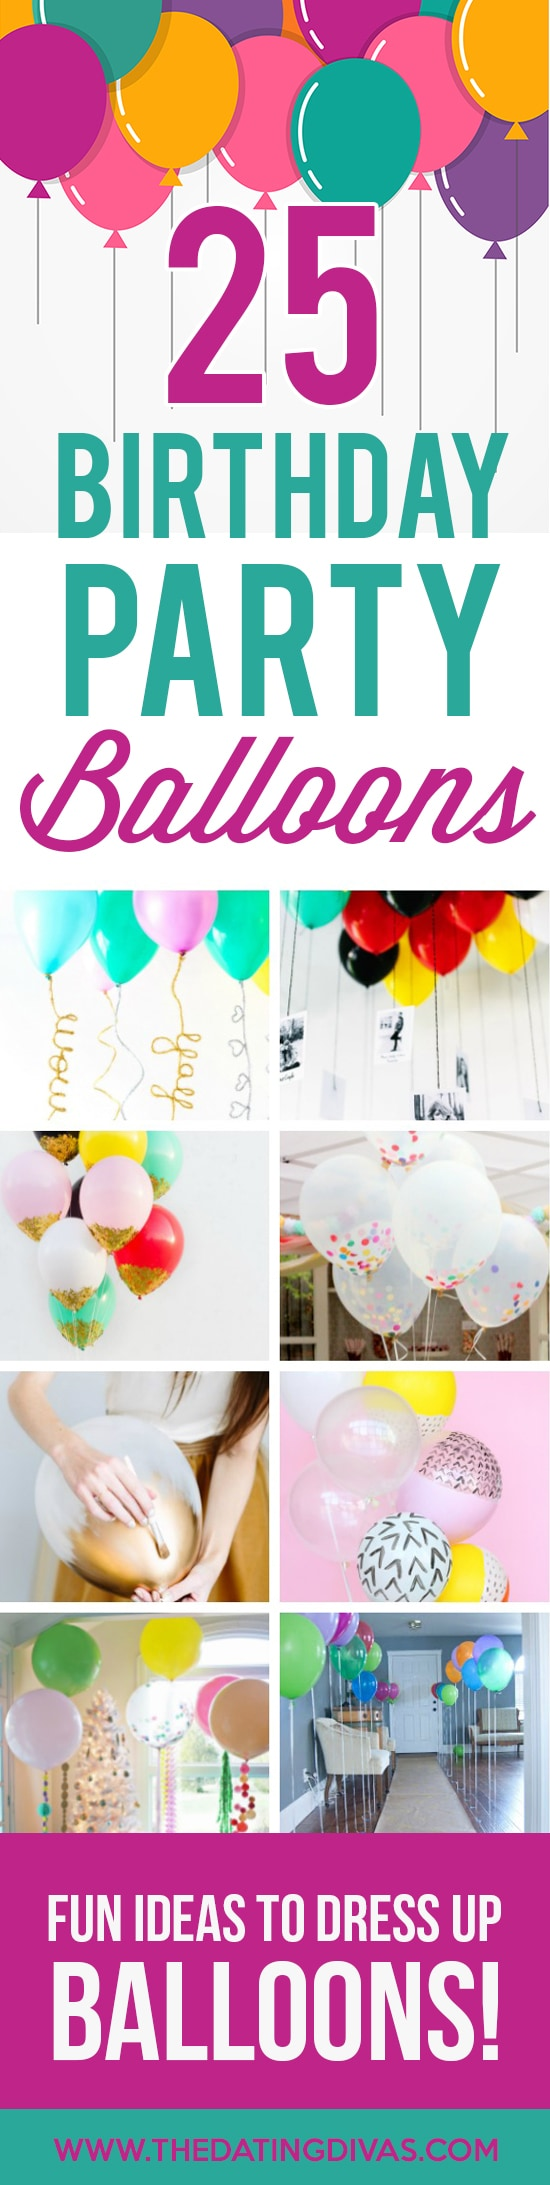 25 Creative Birthday Party Balloon Ideas